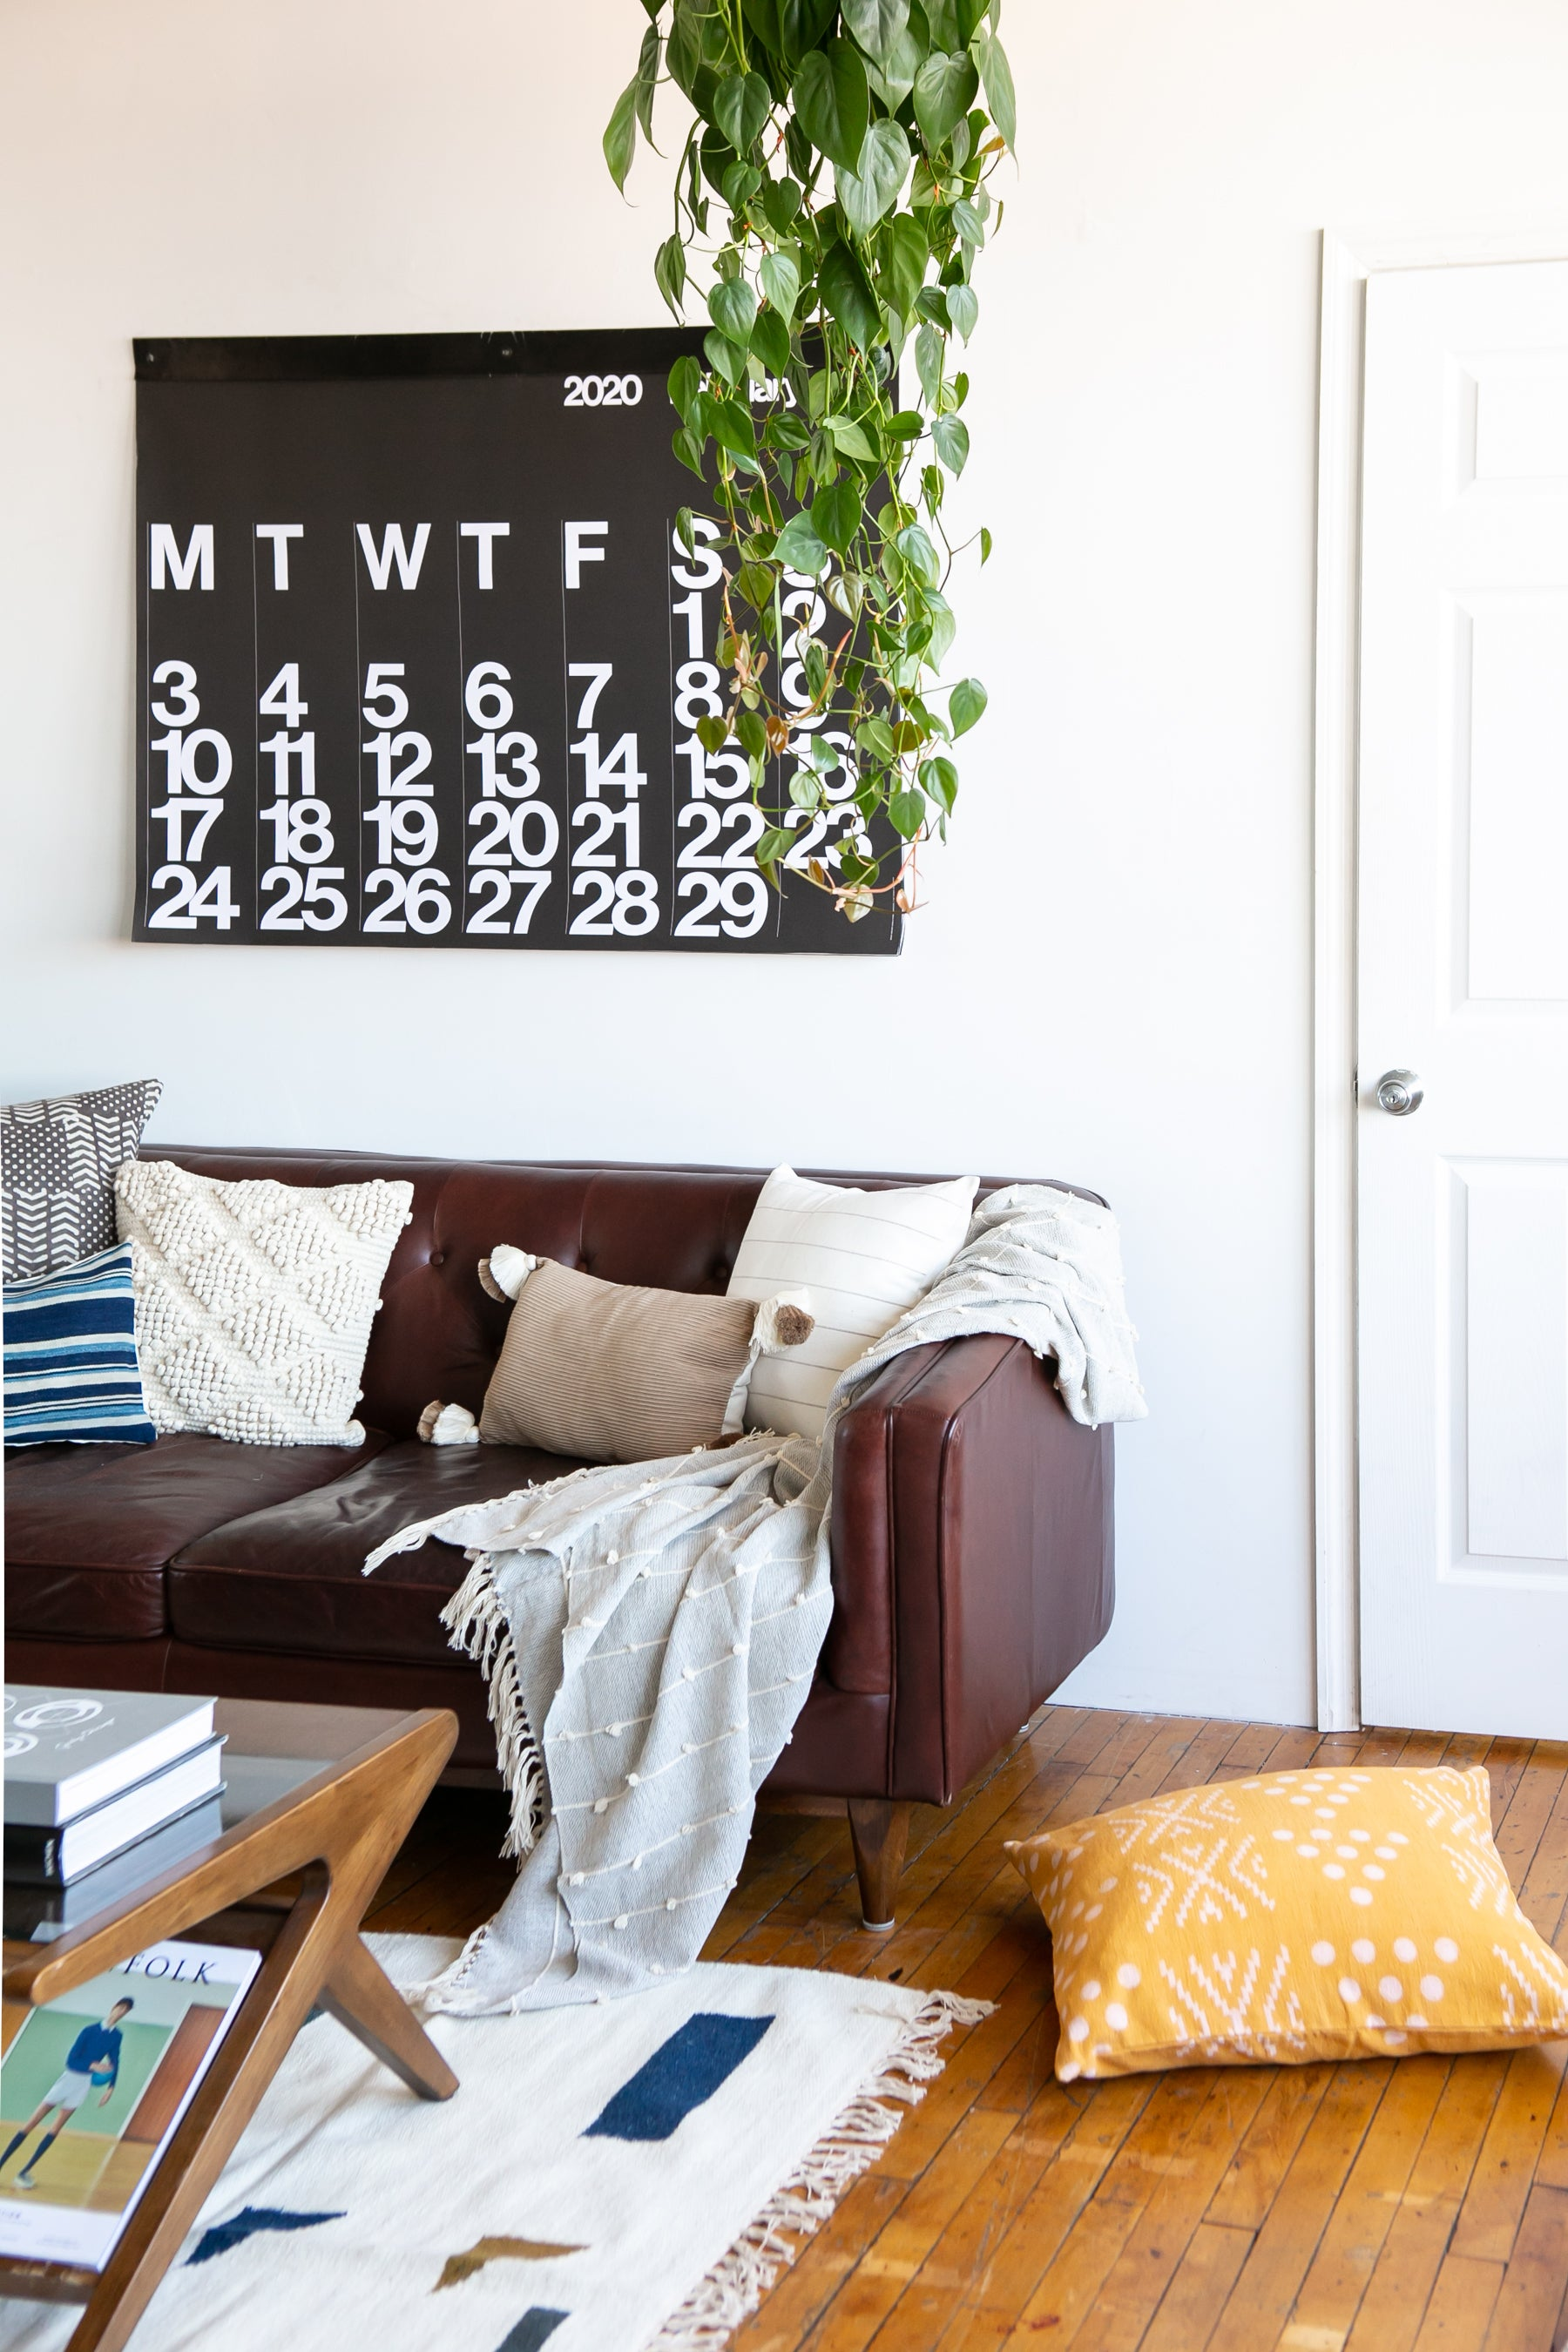 4 Easy Steps to Start Curating Your Wall Decor - Sigrid & Co.